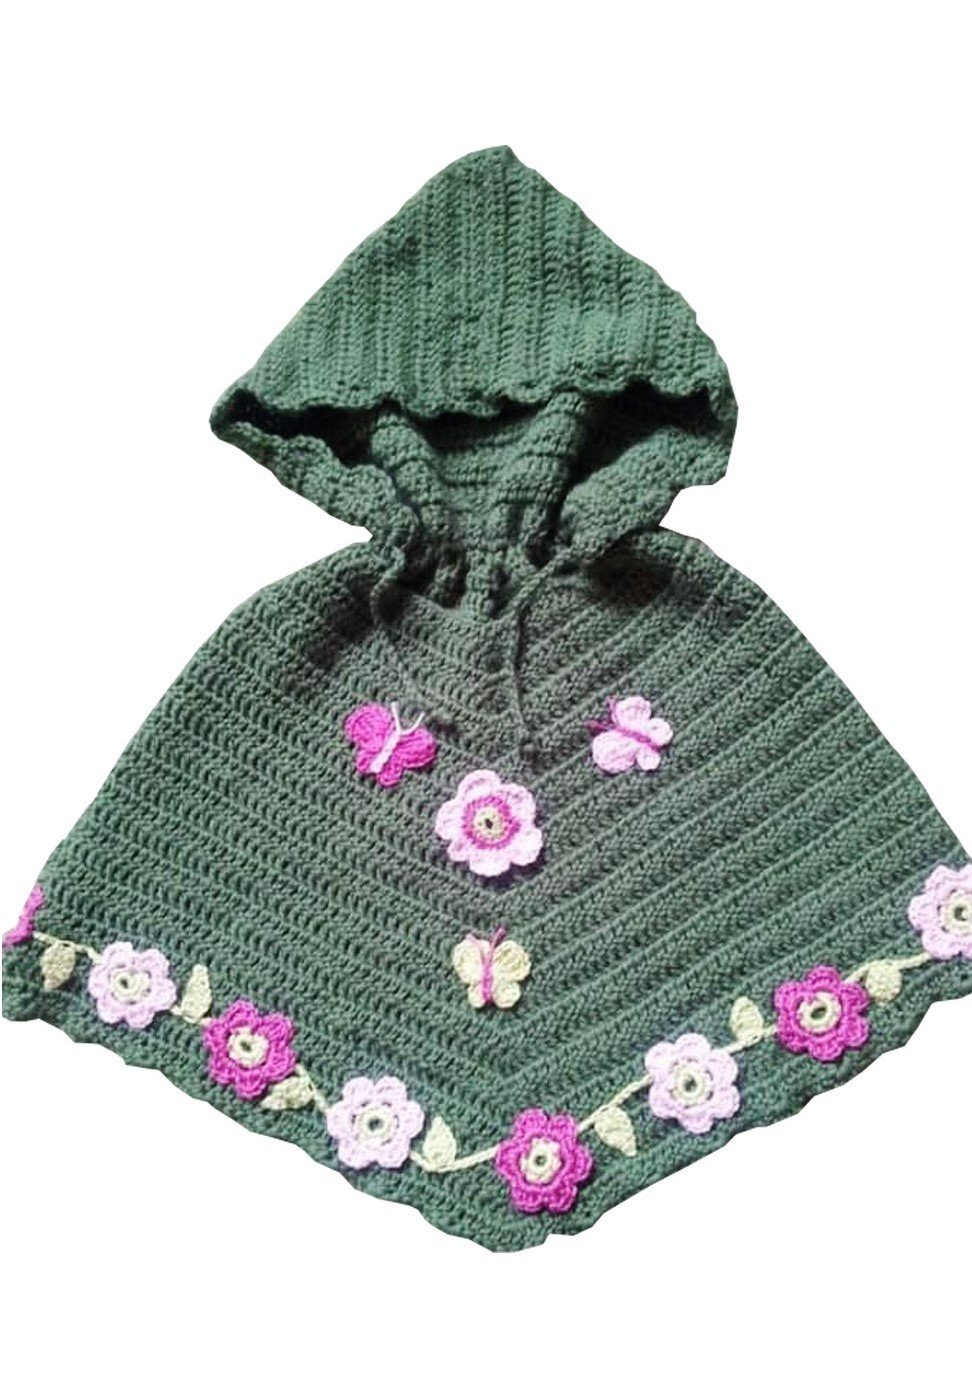 Hand Crocheted Hooded Girls Poncho